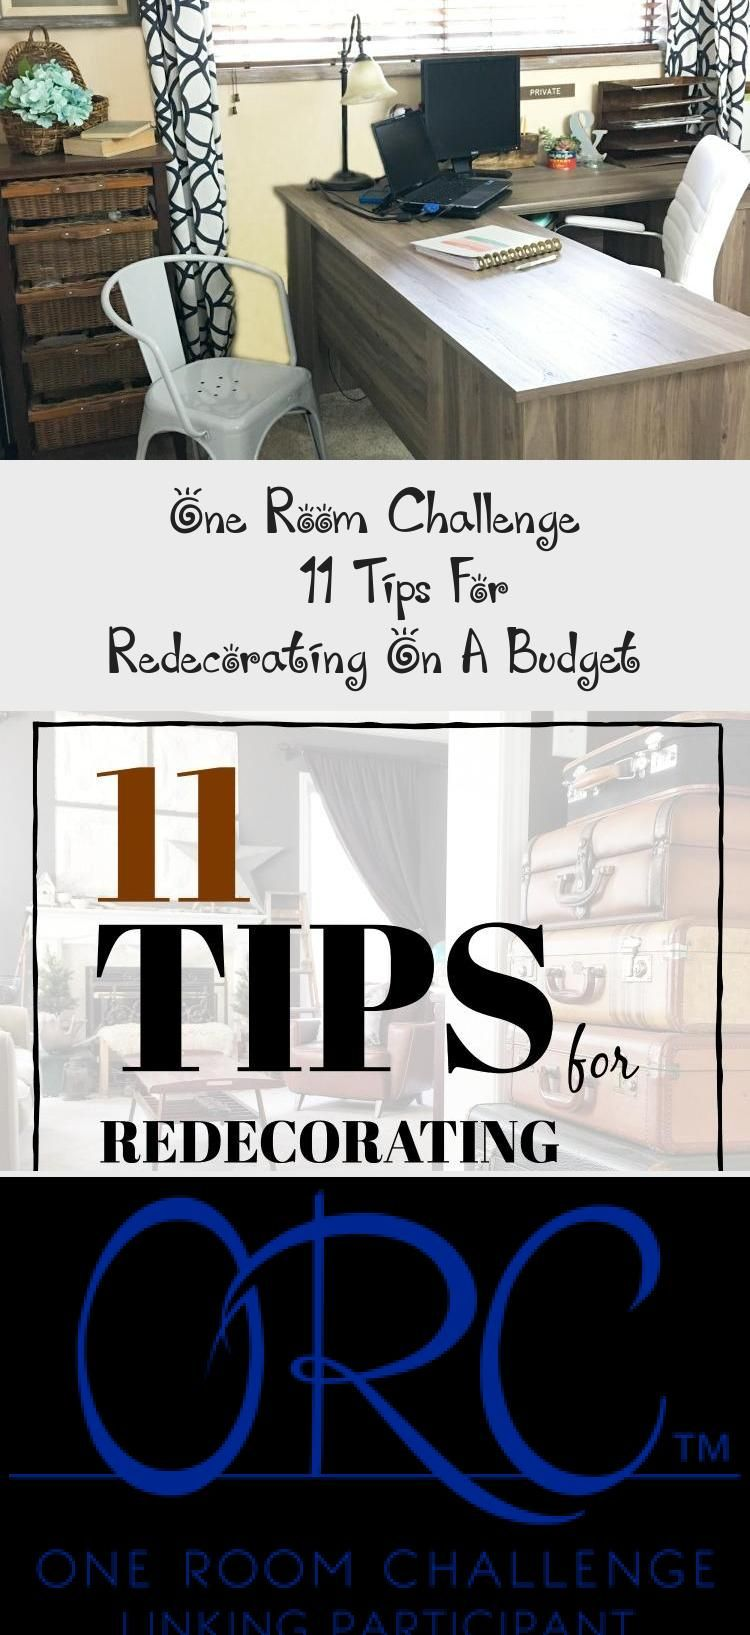 How to redecorate on a budget.  Here are some tips.  Find more on salvagesisterandmister.com #HomeDecorDIYVideosLivingRoom #HomeDecorDIYVideosCheap #HomeDecorDIYVideosIdeas #HomeDecorDIYVideosBedroom #HomeDecorDIYVideosProjects